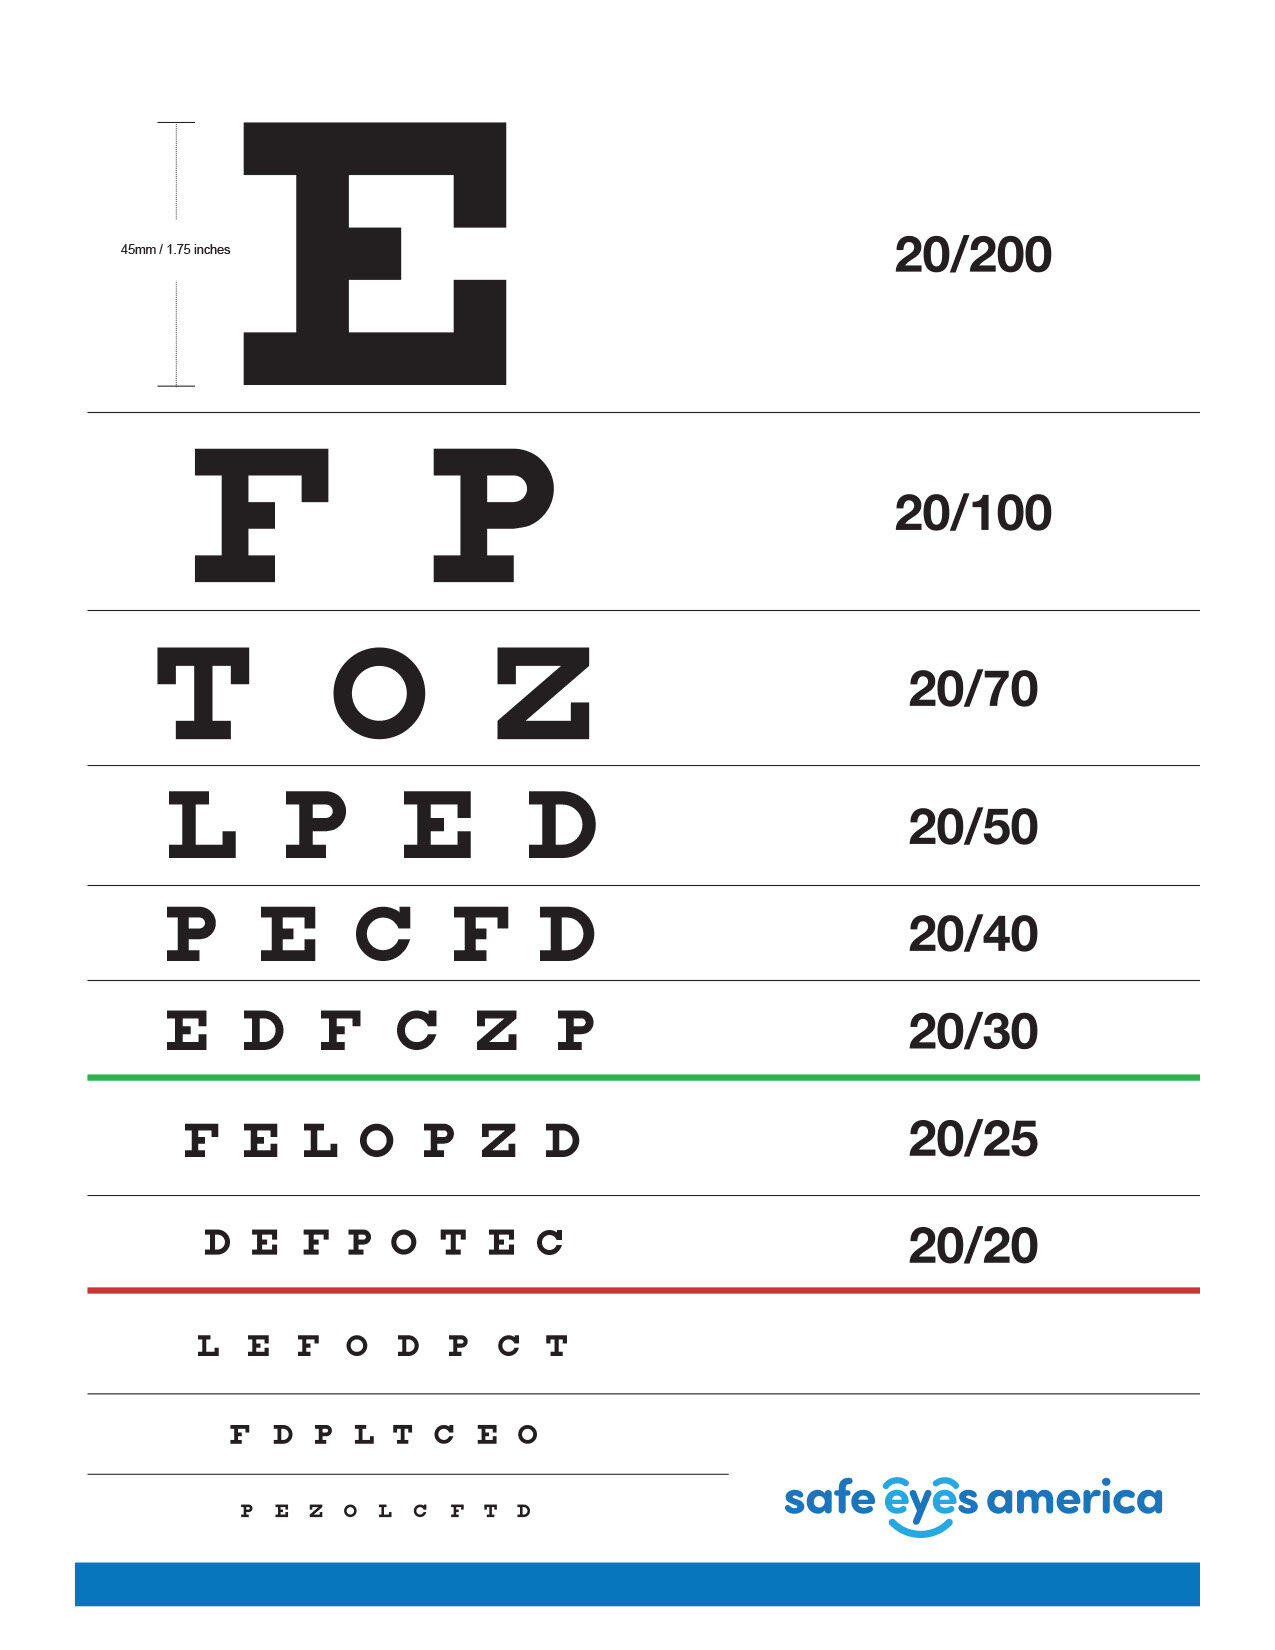 Home Eye Test Safe Eyes America